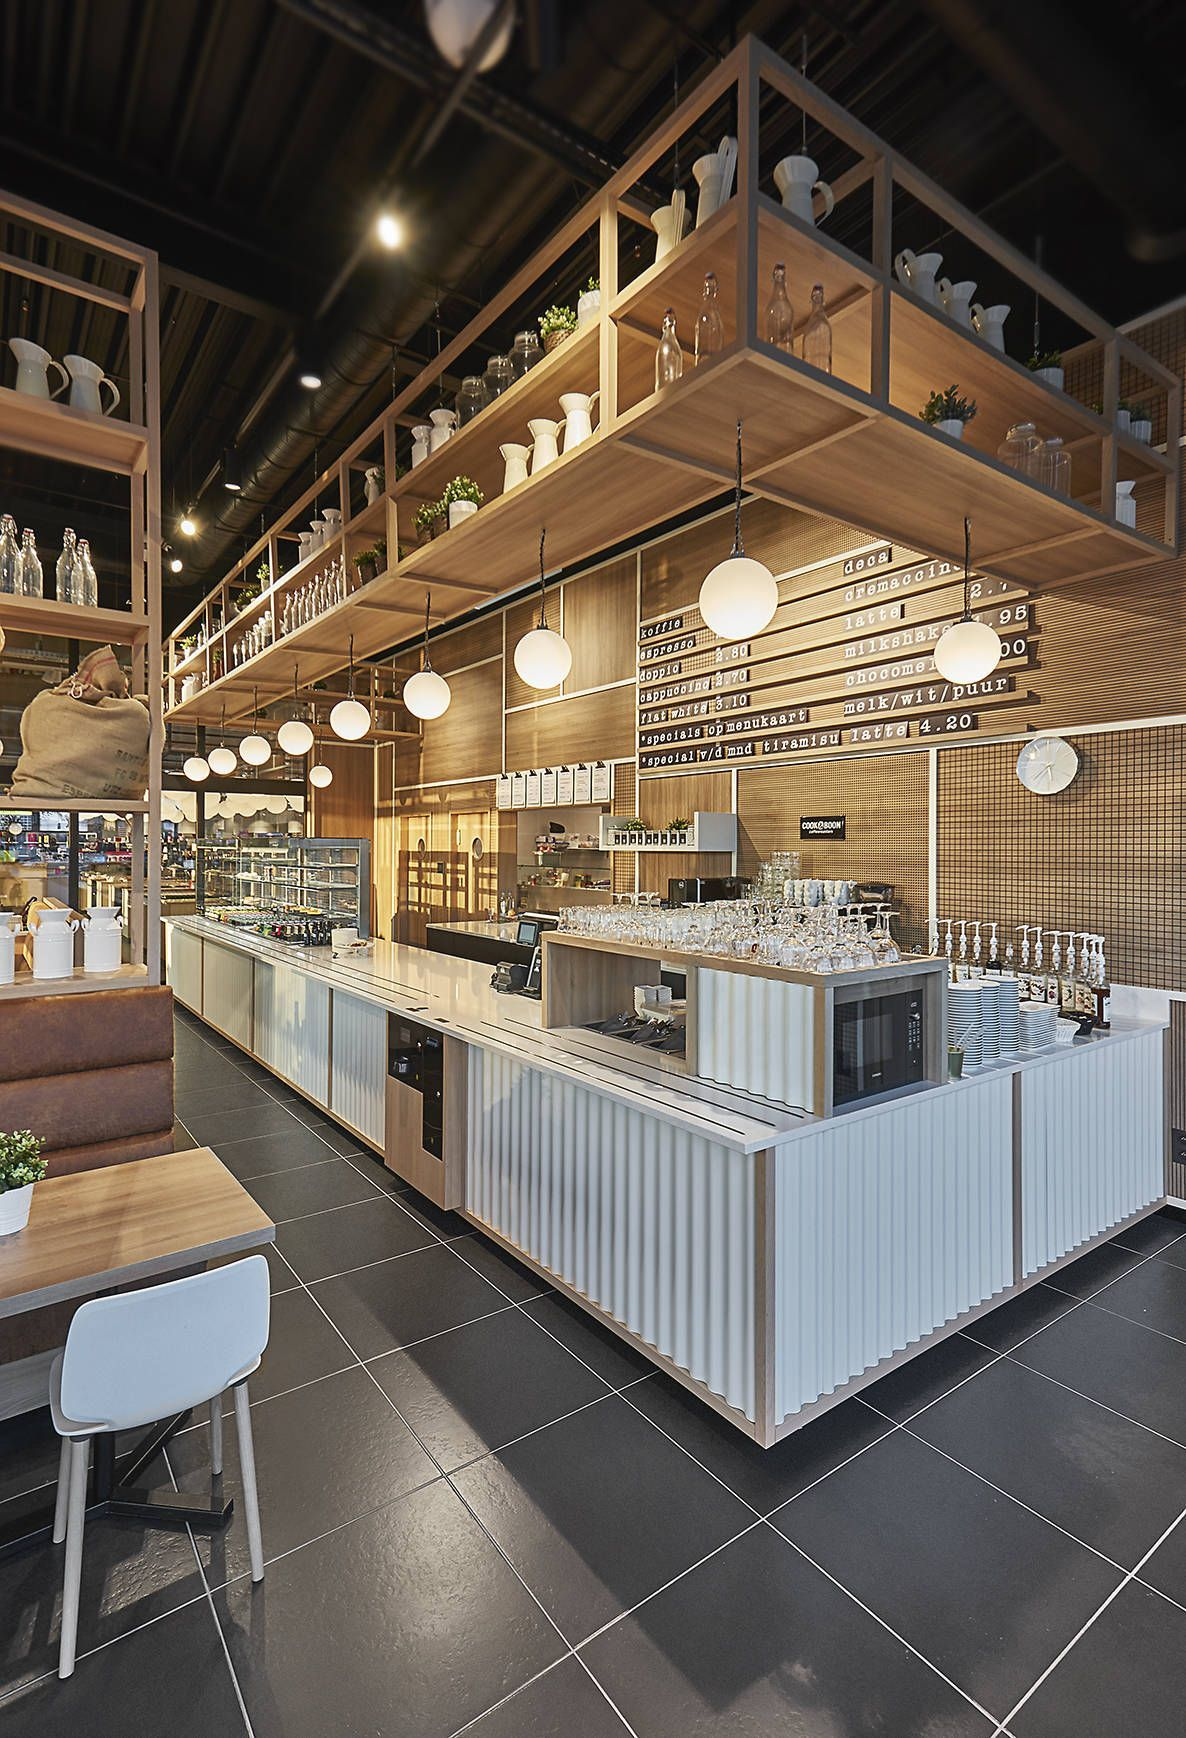 Not Everybody Suches As The Exact Same Style However Contemporary Styles Are Normally Their Cafe Interior Design Restaurant Interior Design Coffee Bar Design